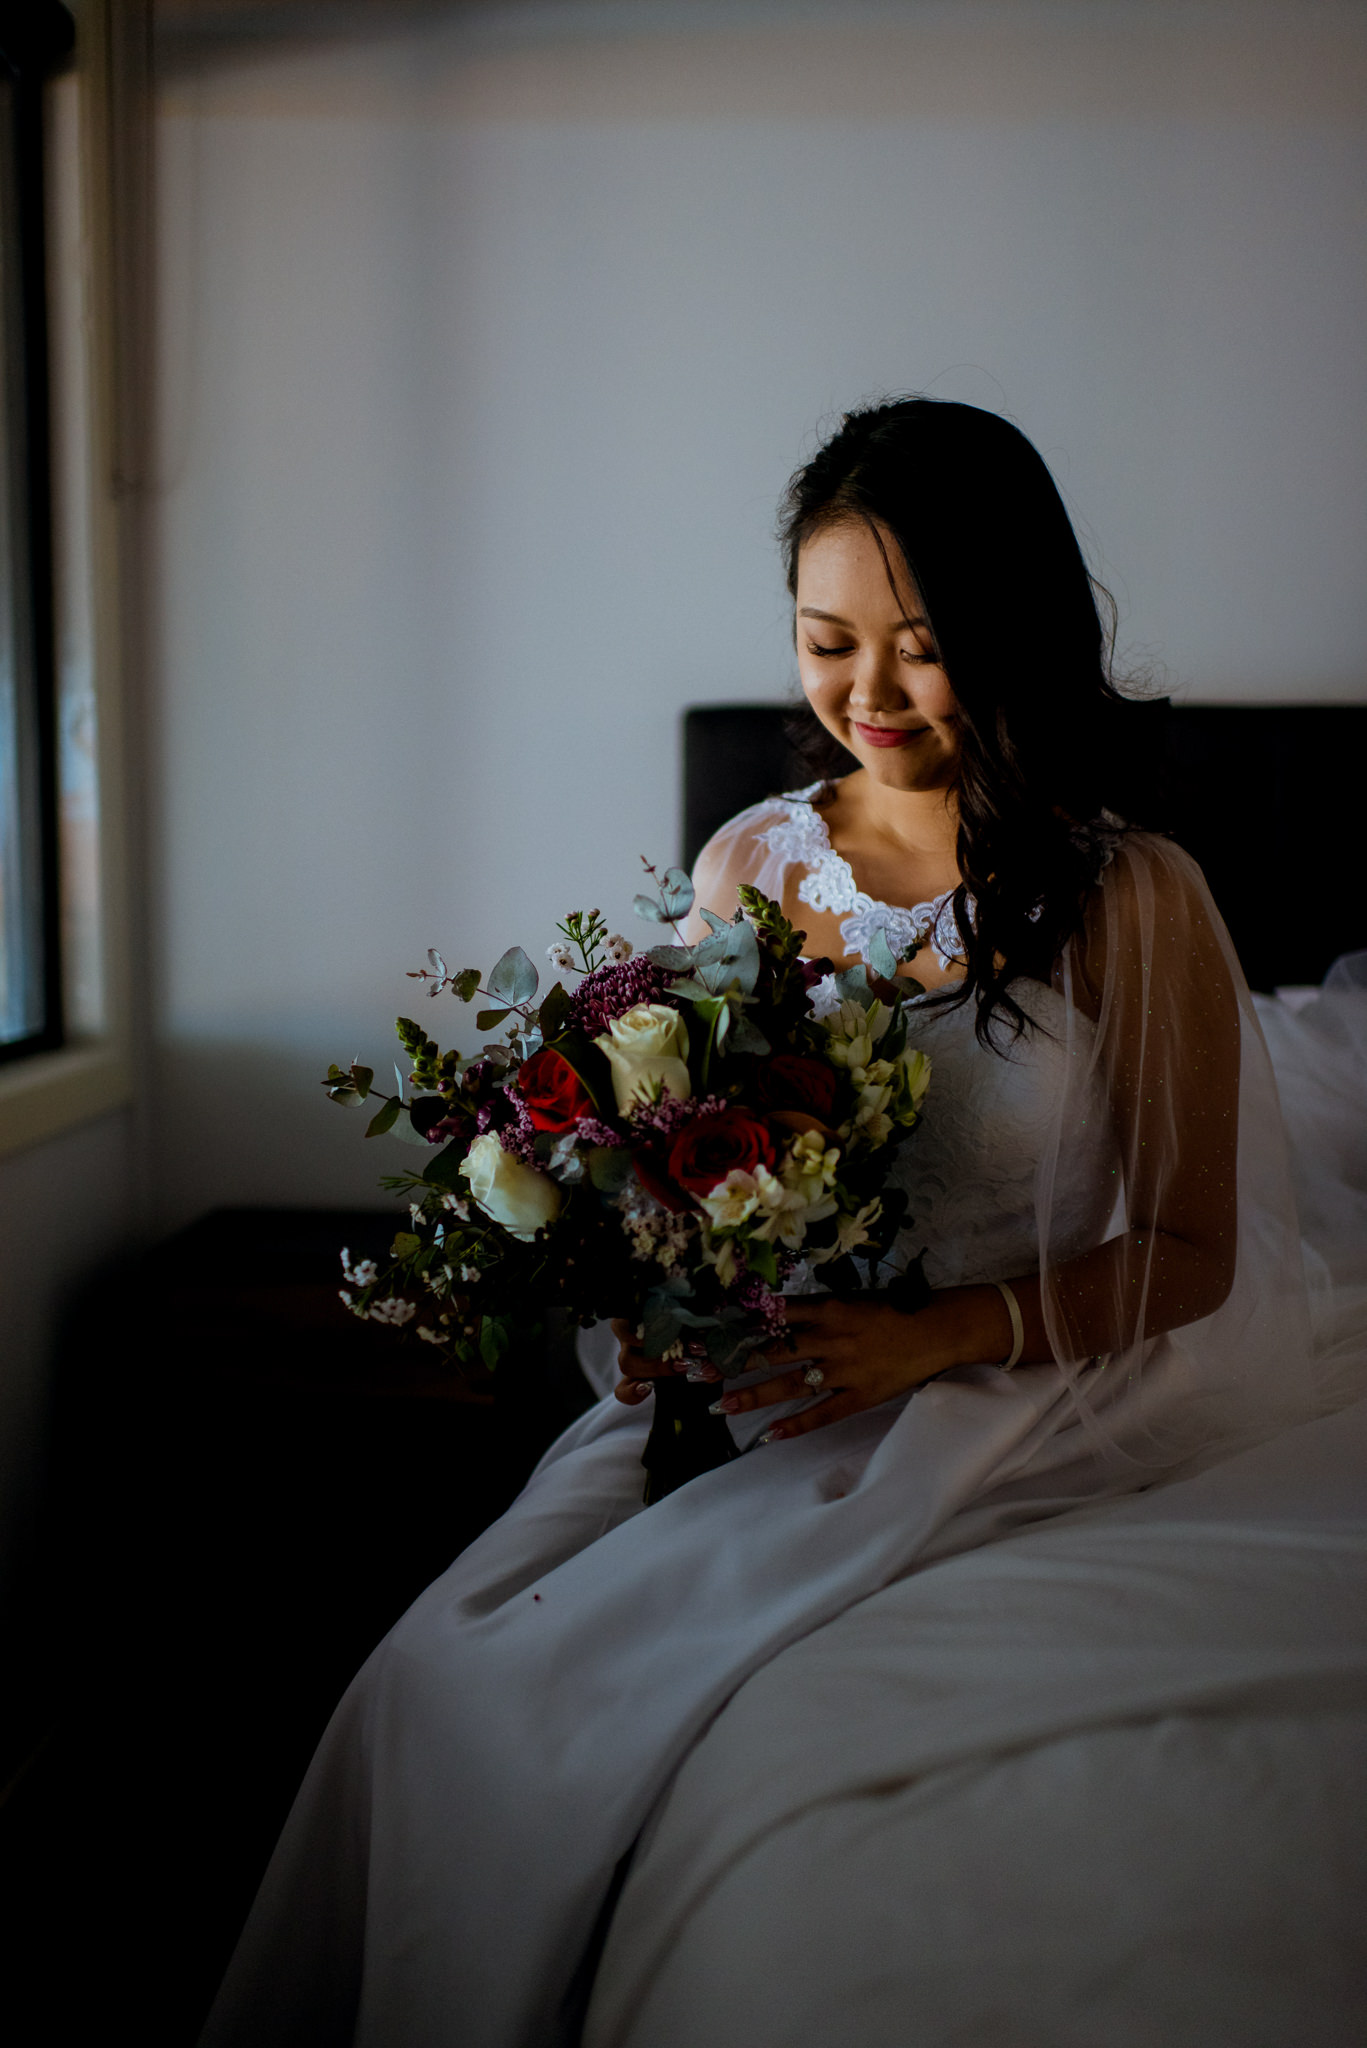 A bride gently smiles at her bouquet as she sits on a bed